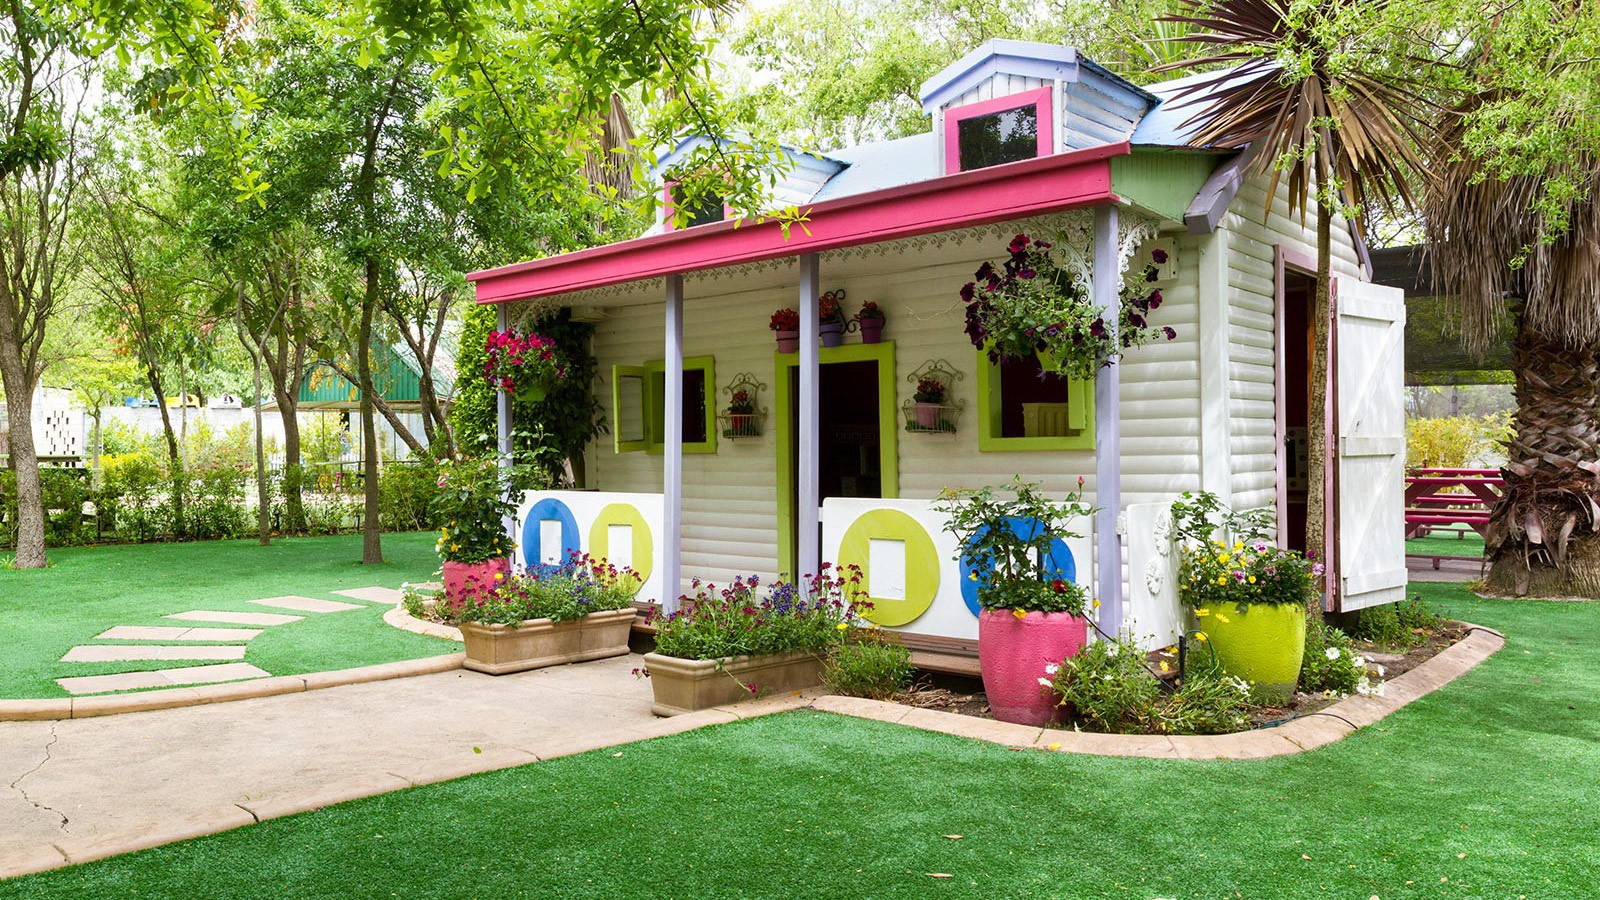 Doll's house party venue ( Outdoor)